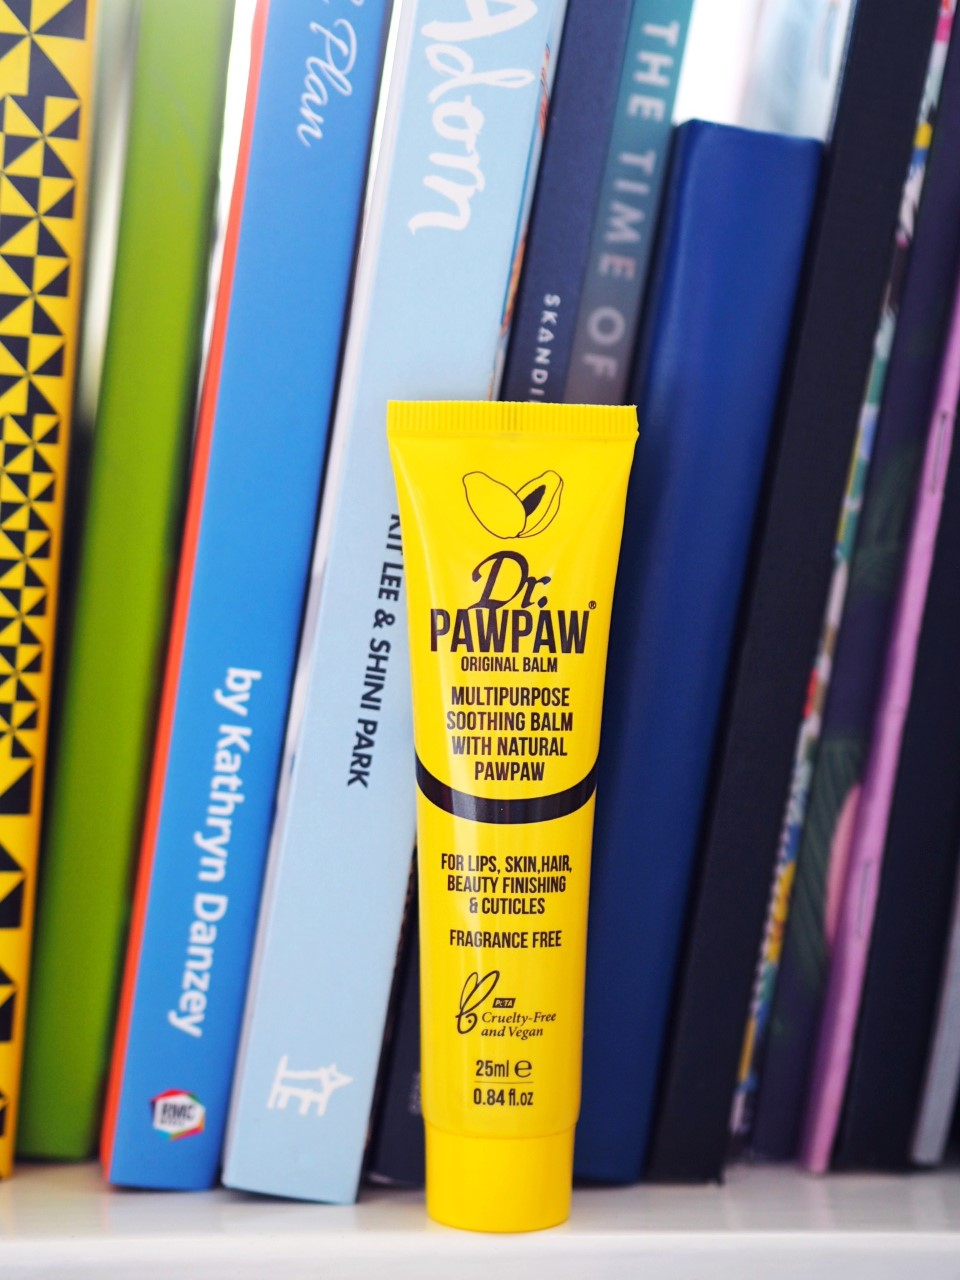 What is Dr Paw Paw good for?